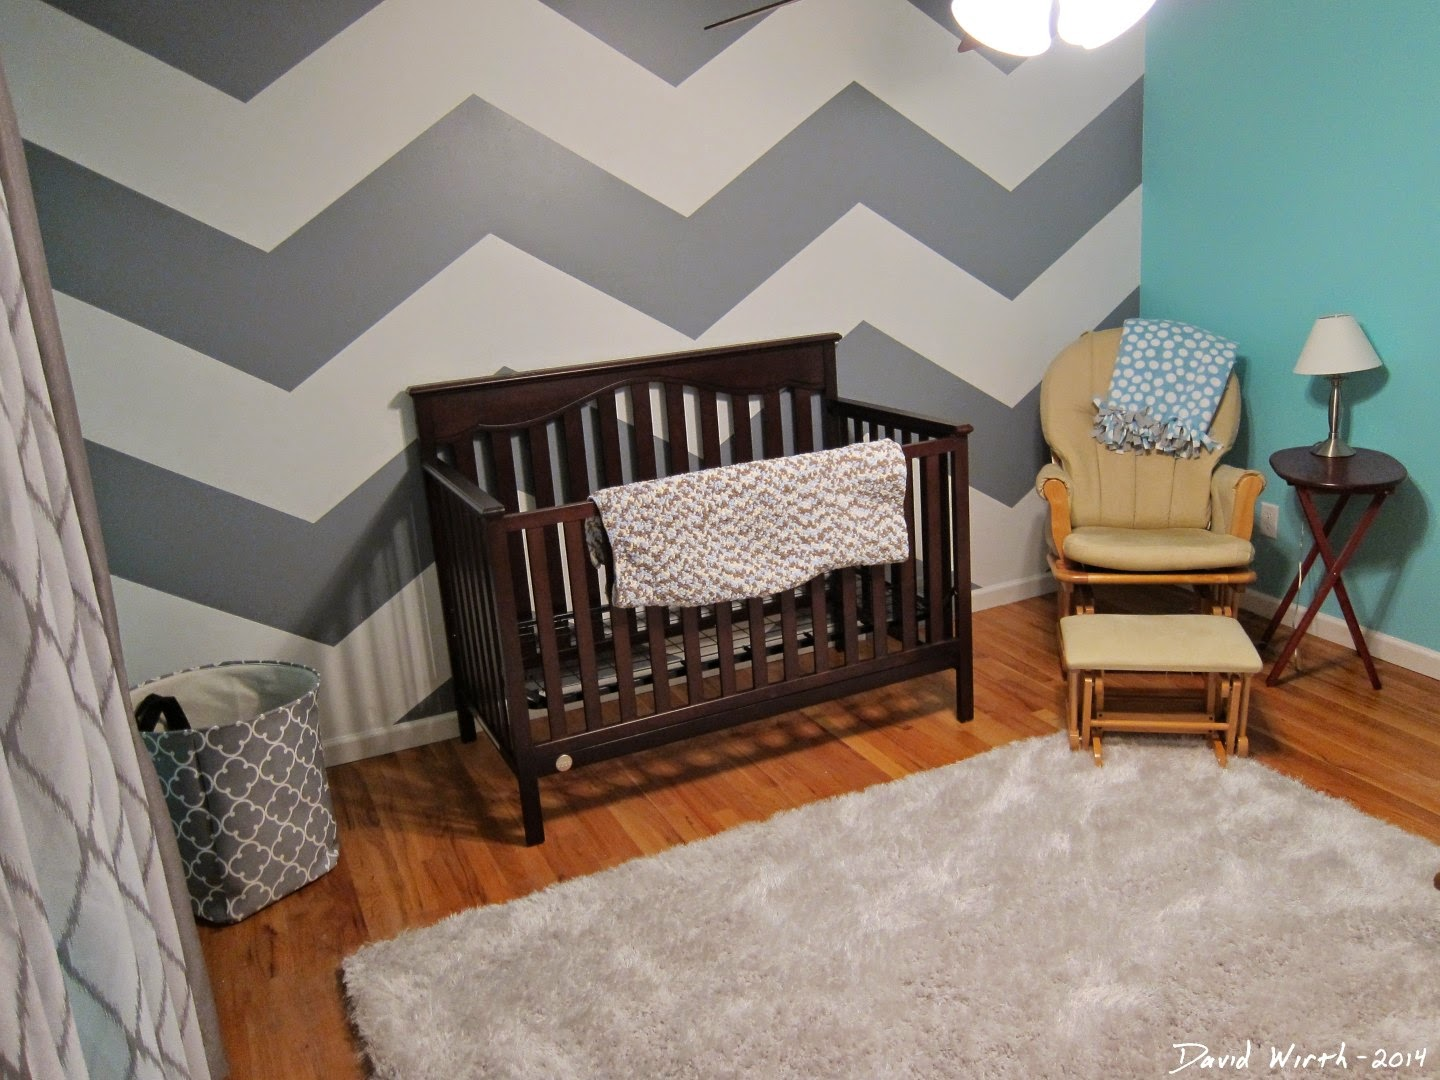 new baby room, ideas, carpet, color, chair, crib, chevron, zig zag, boy, girl